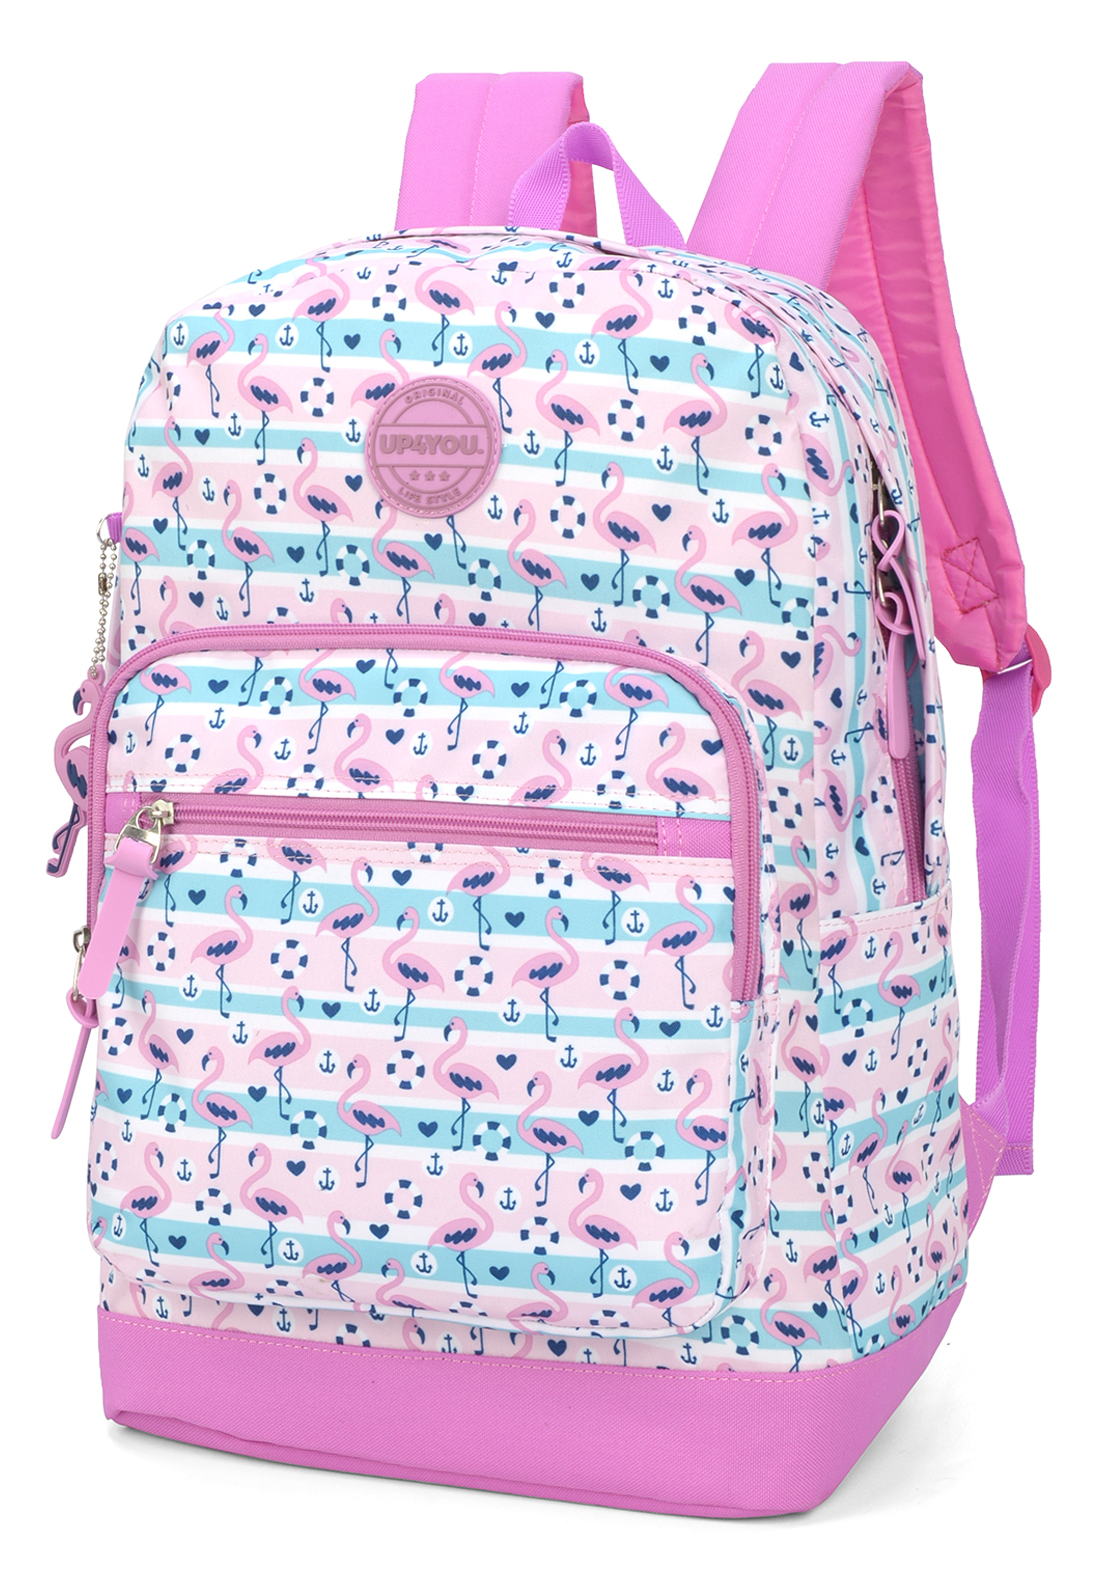 MOCHILA DE COSTAS G UP4YOU LIFE STYLE FLAMINGO - LUXCEL  - PRIMEIRA CLASSE MALAS